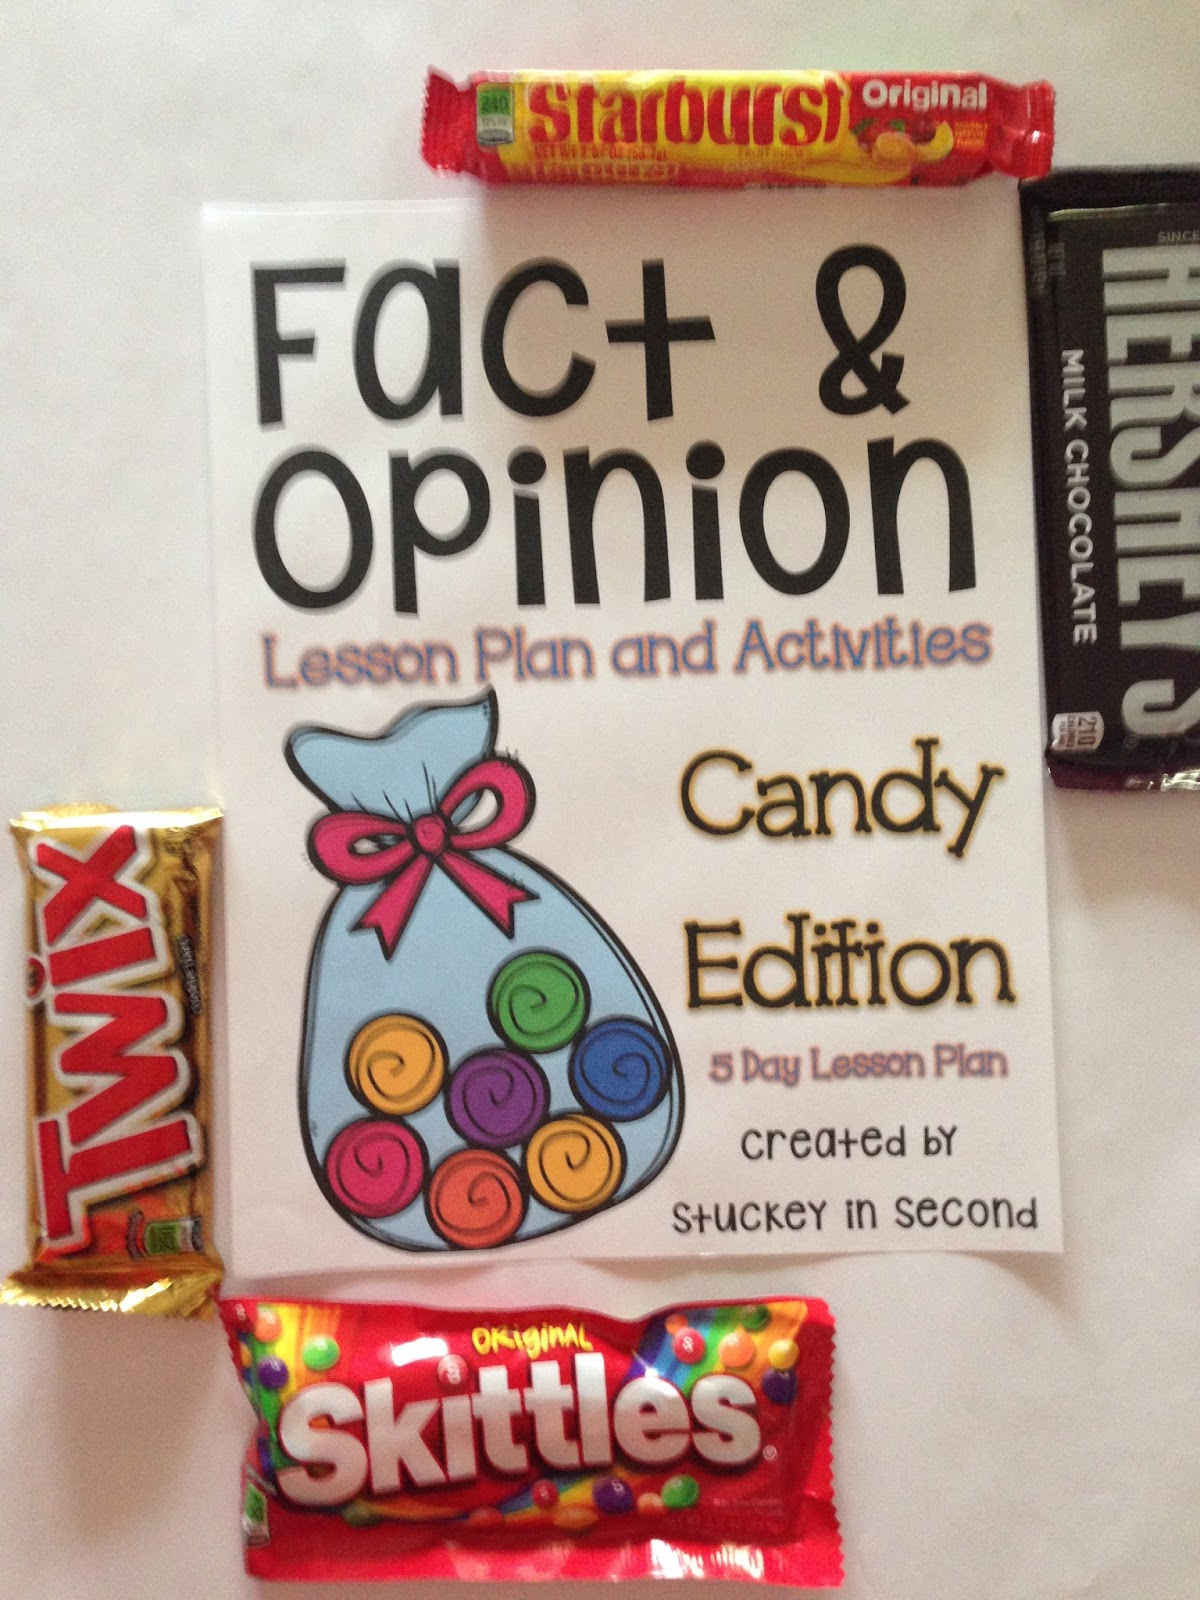 Stuckey in Second: Teaching Fact & Opinion with Candy